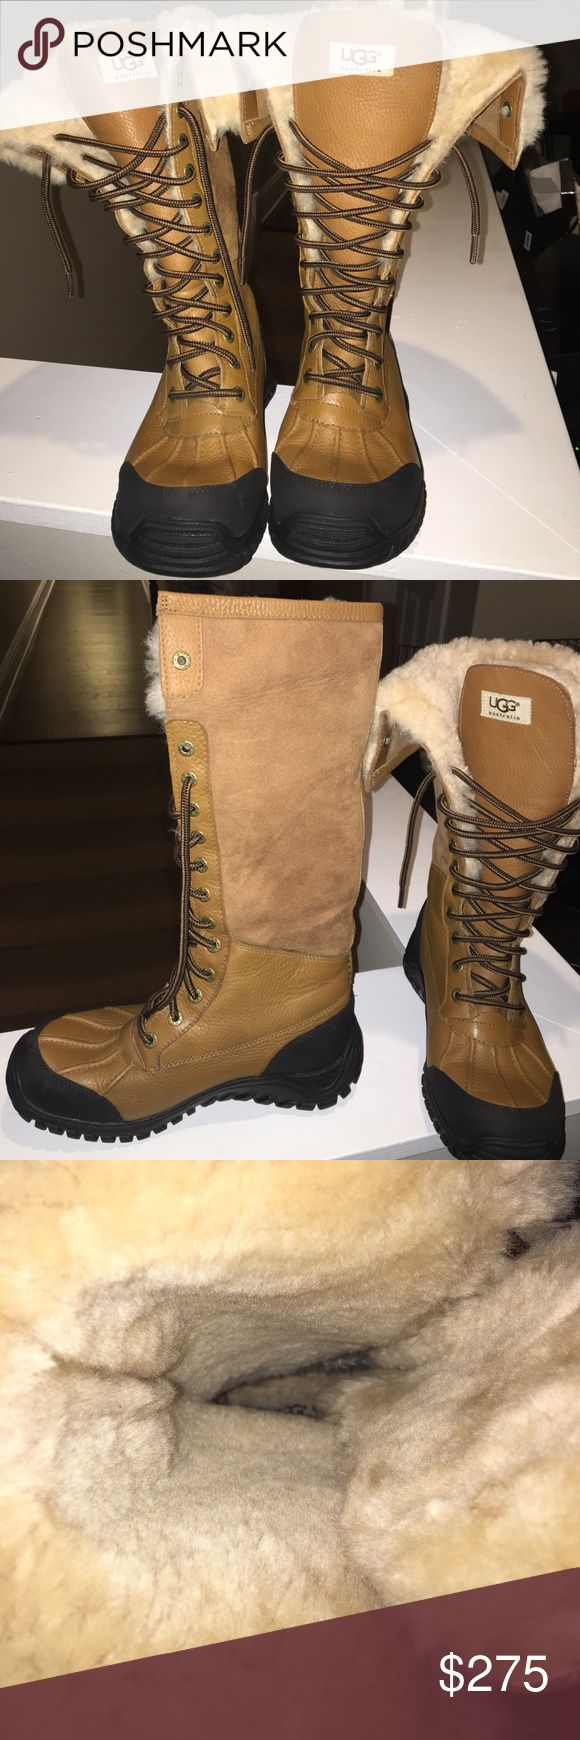 UGG ADIRONDACK TALL BOOTS Worn twice; boots are in like new condition. No original box. Still fluffy! See comments.....Size fits a wide 8.5 without any socks! UGG Shoes Winter & Rain Boots